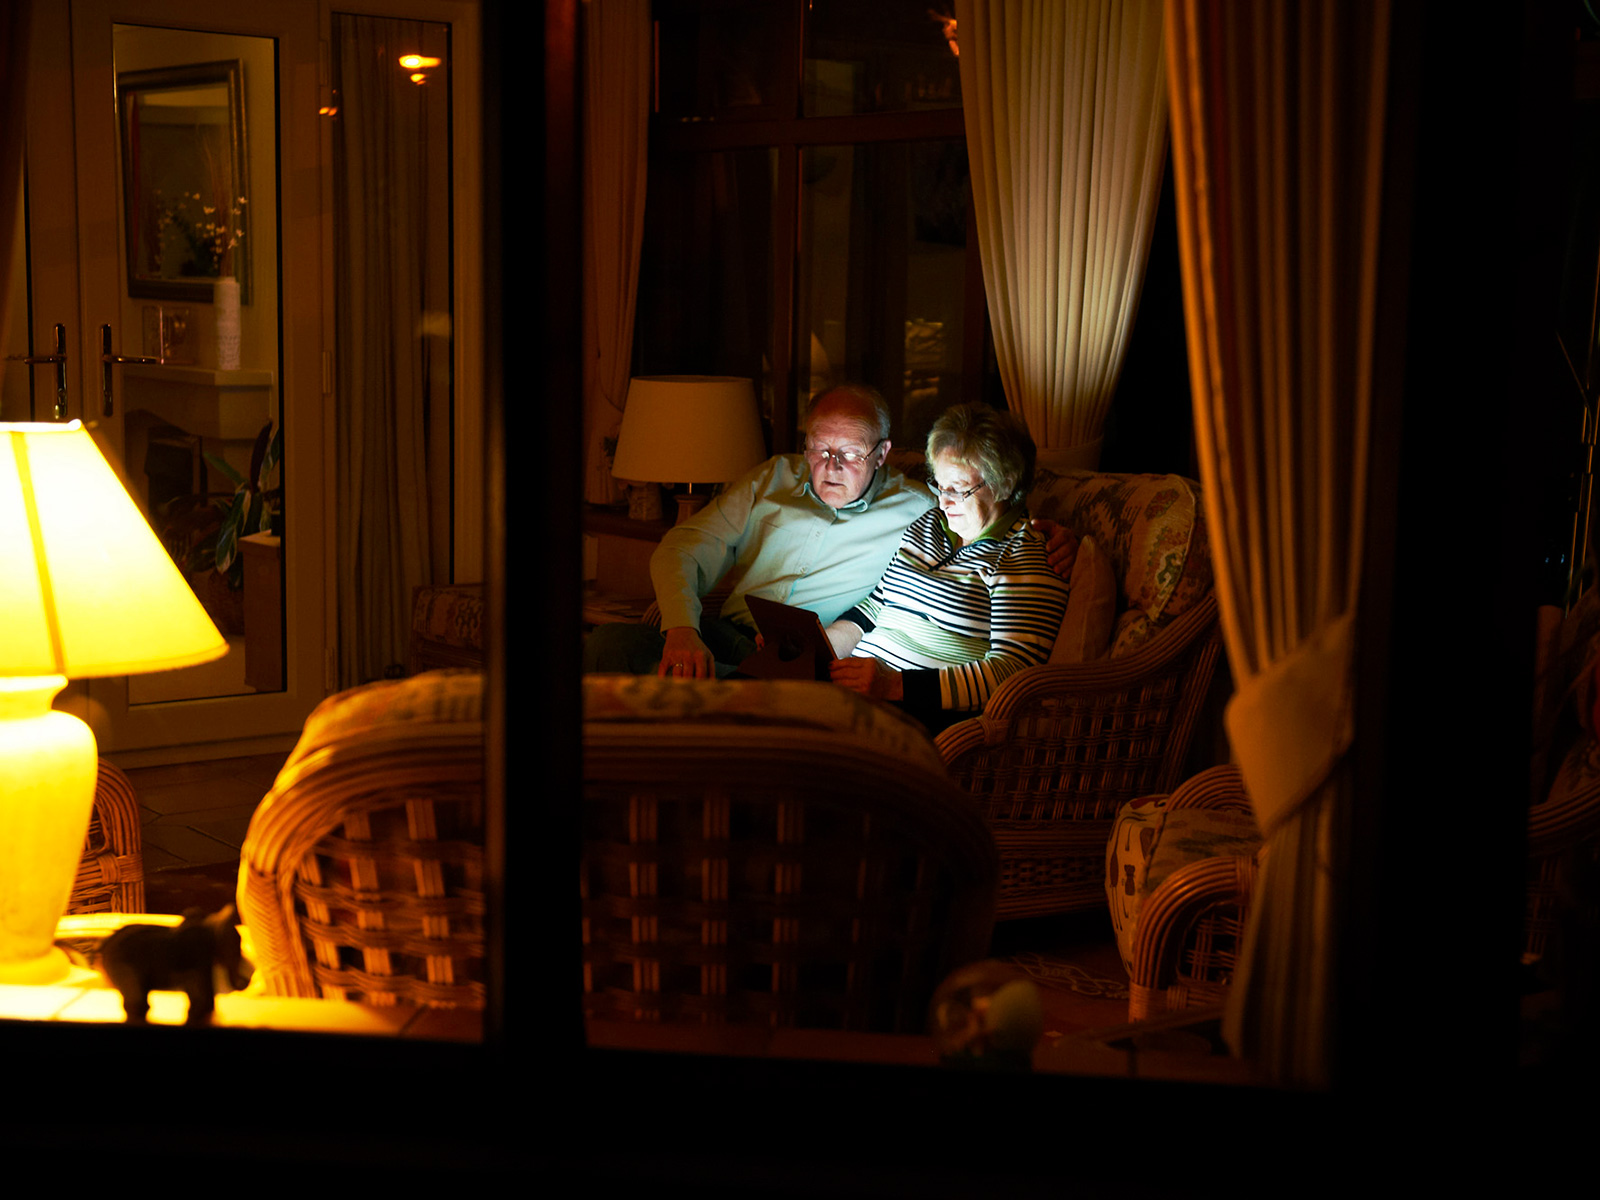 Grandparents at home